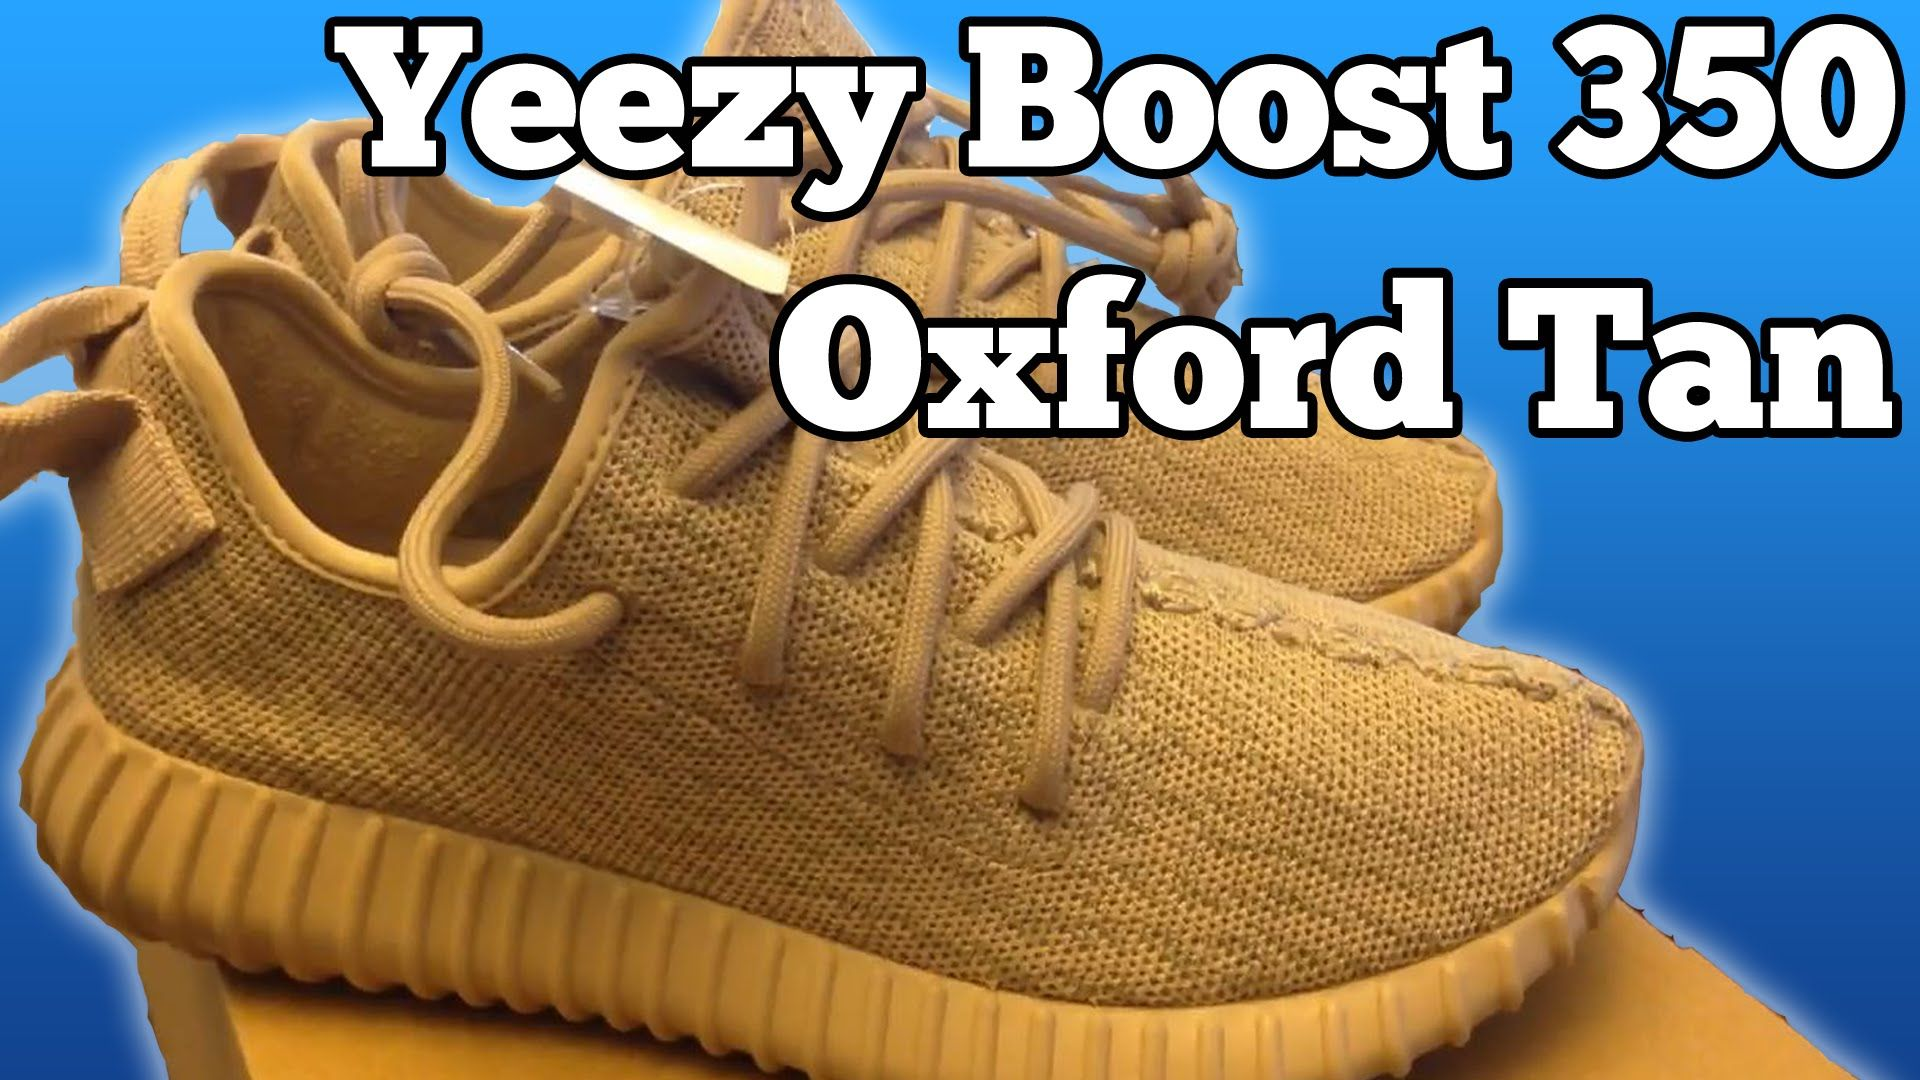 adidas shoes fake and real yeezys comparison quotes 630523